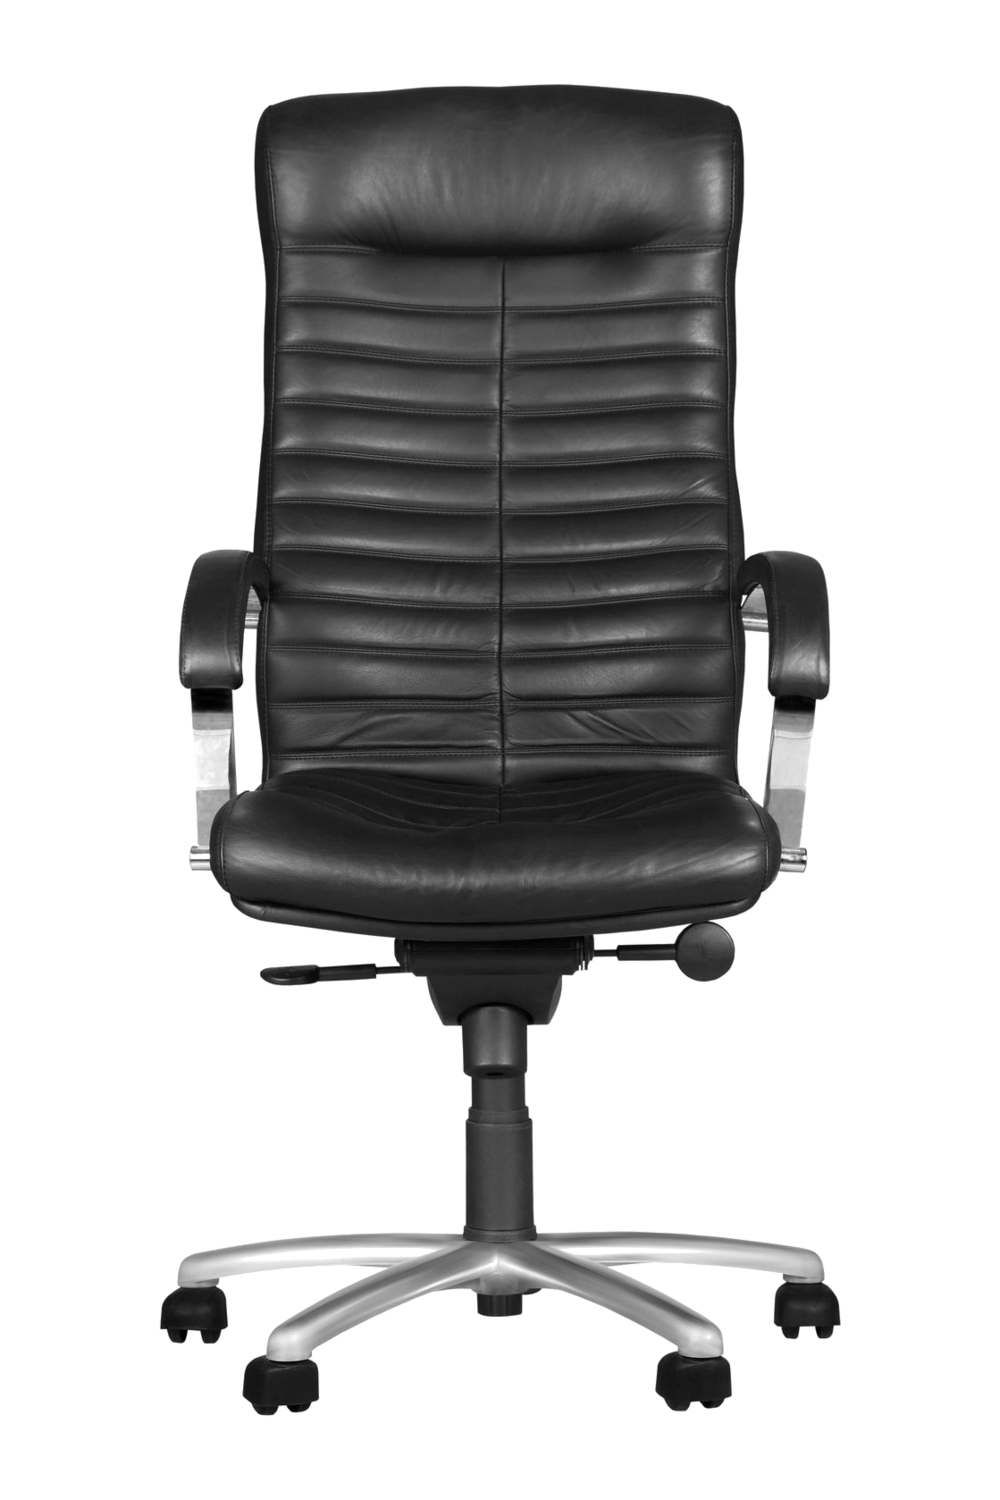 Desk Chair Png Png Image